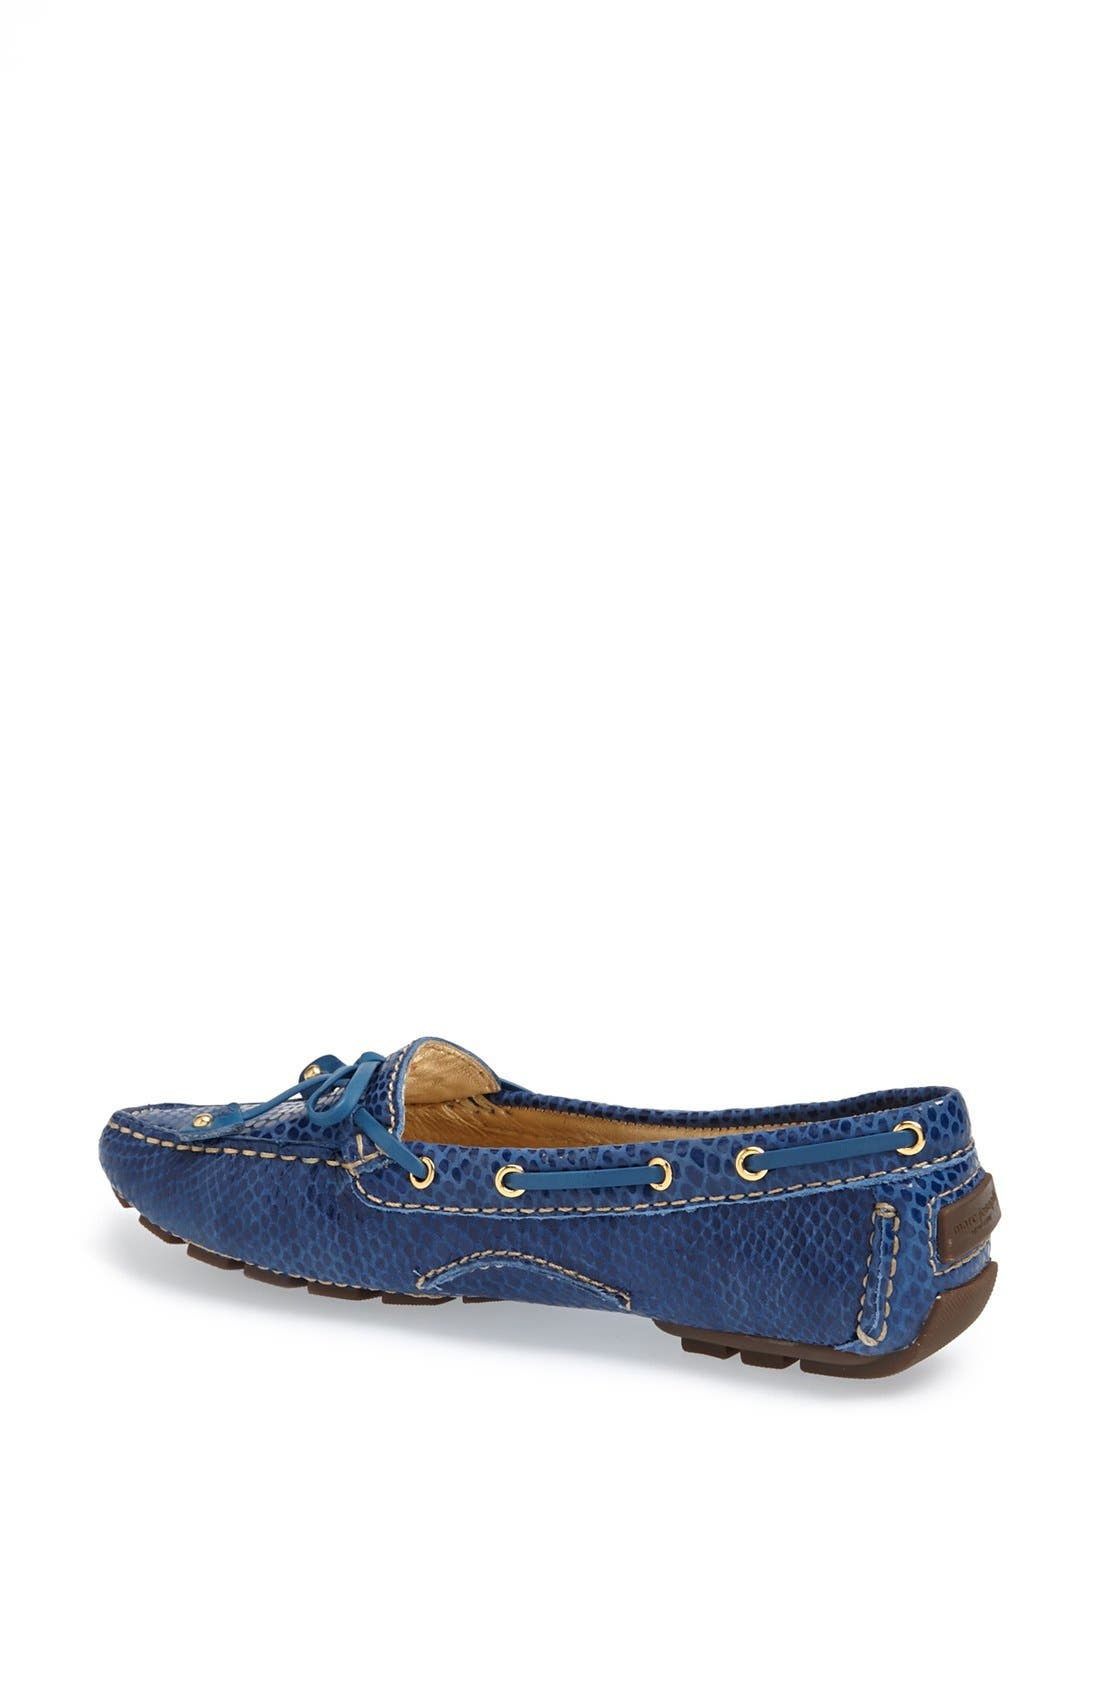 Alternate Image 2  - Marc Joseph New York 'Cypress Hill Snakes' Loafer